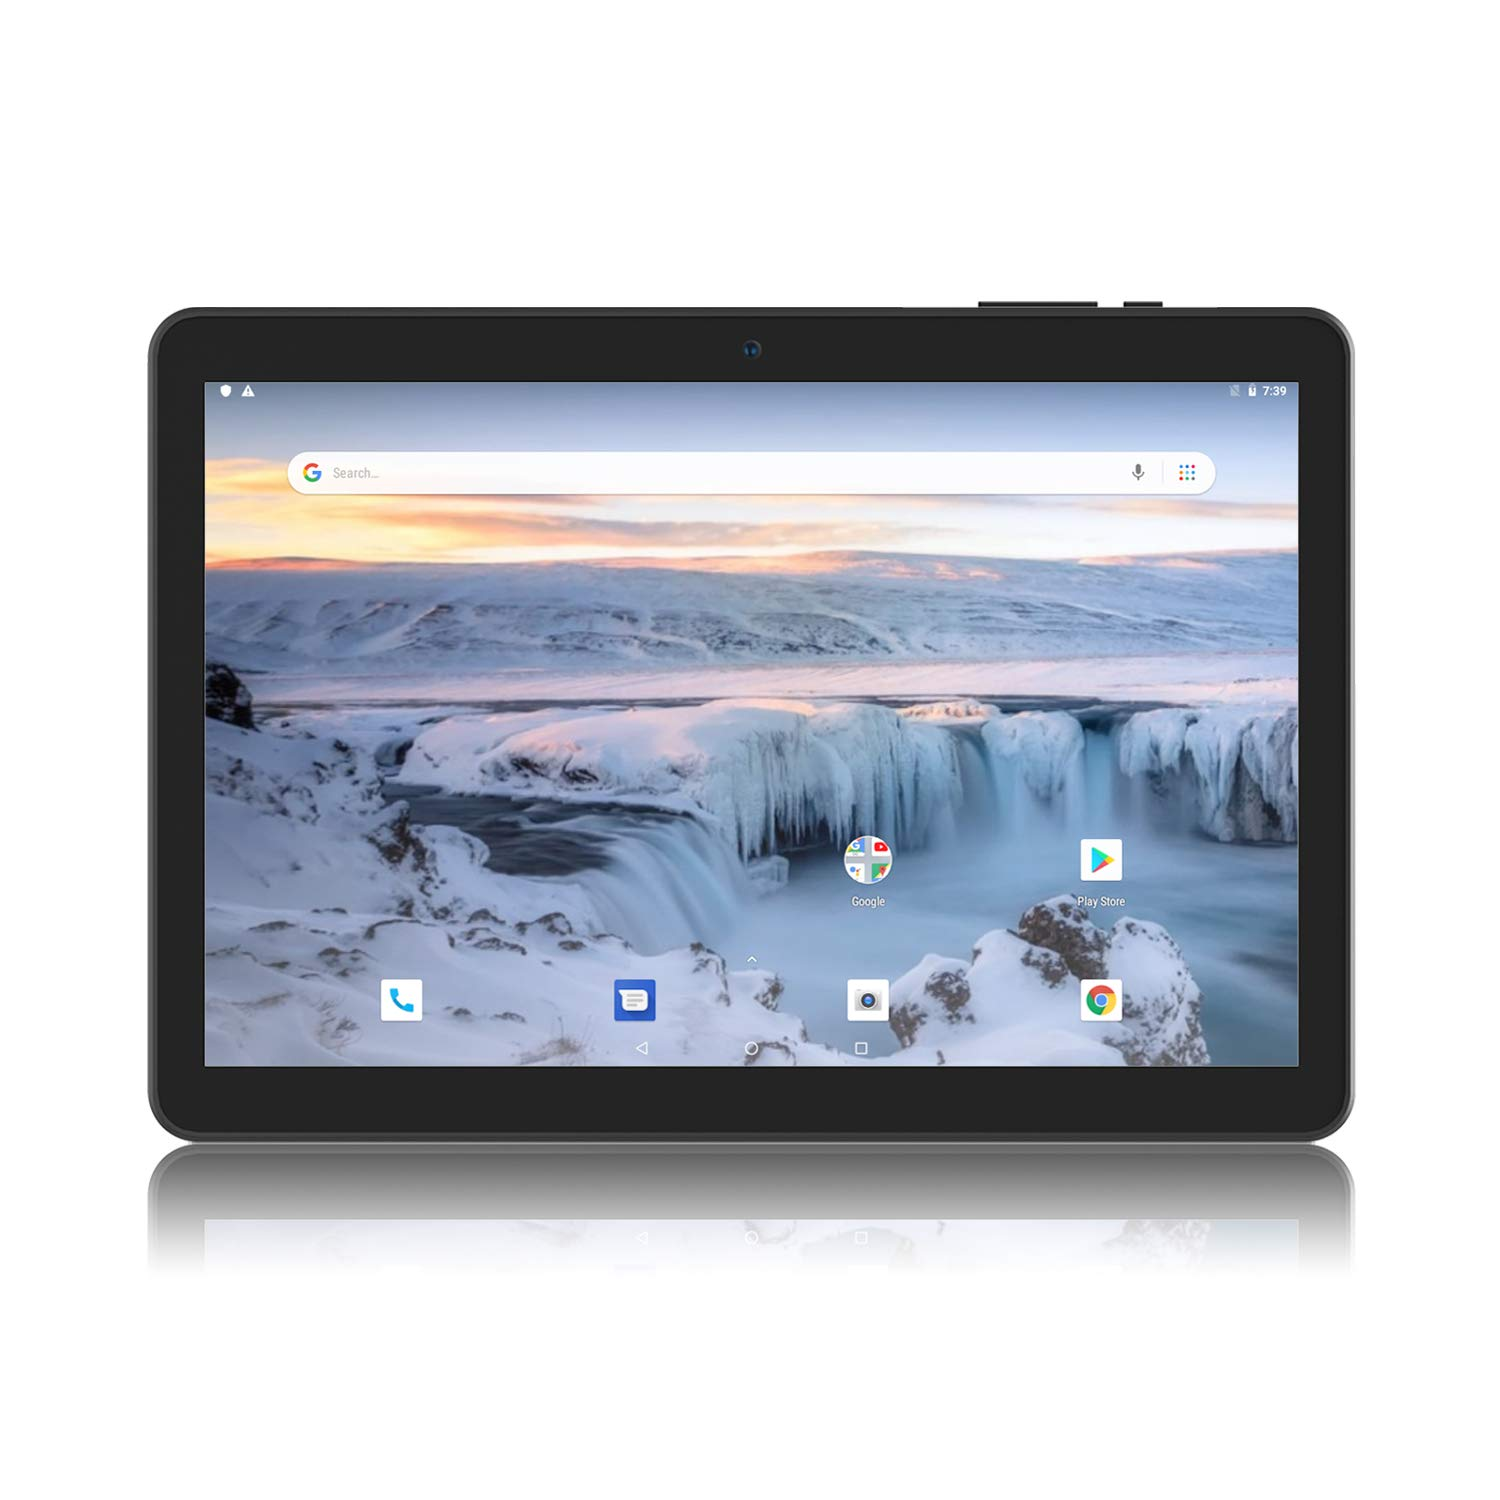 Android Tablet 10 Inch, Android 8.1 Go Unlocked Tablet PC with SIM Card Slots, 3G Phone Support, Quad Core, 1.3GHz, 16GB, 2MP+5MP Dual Camera, WiFi, Bluetooth, GPS